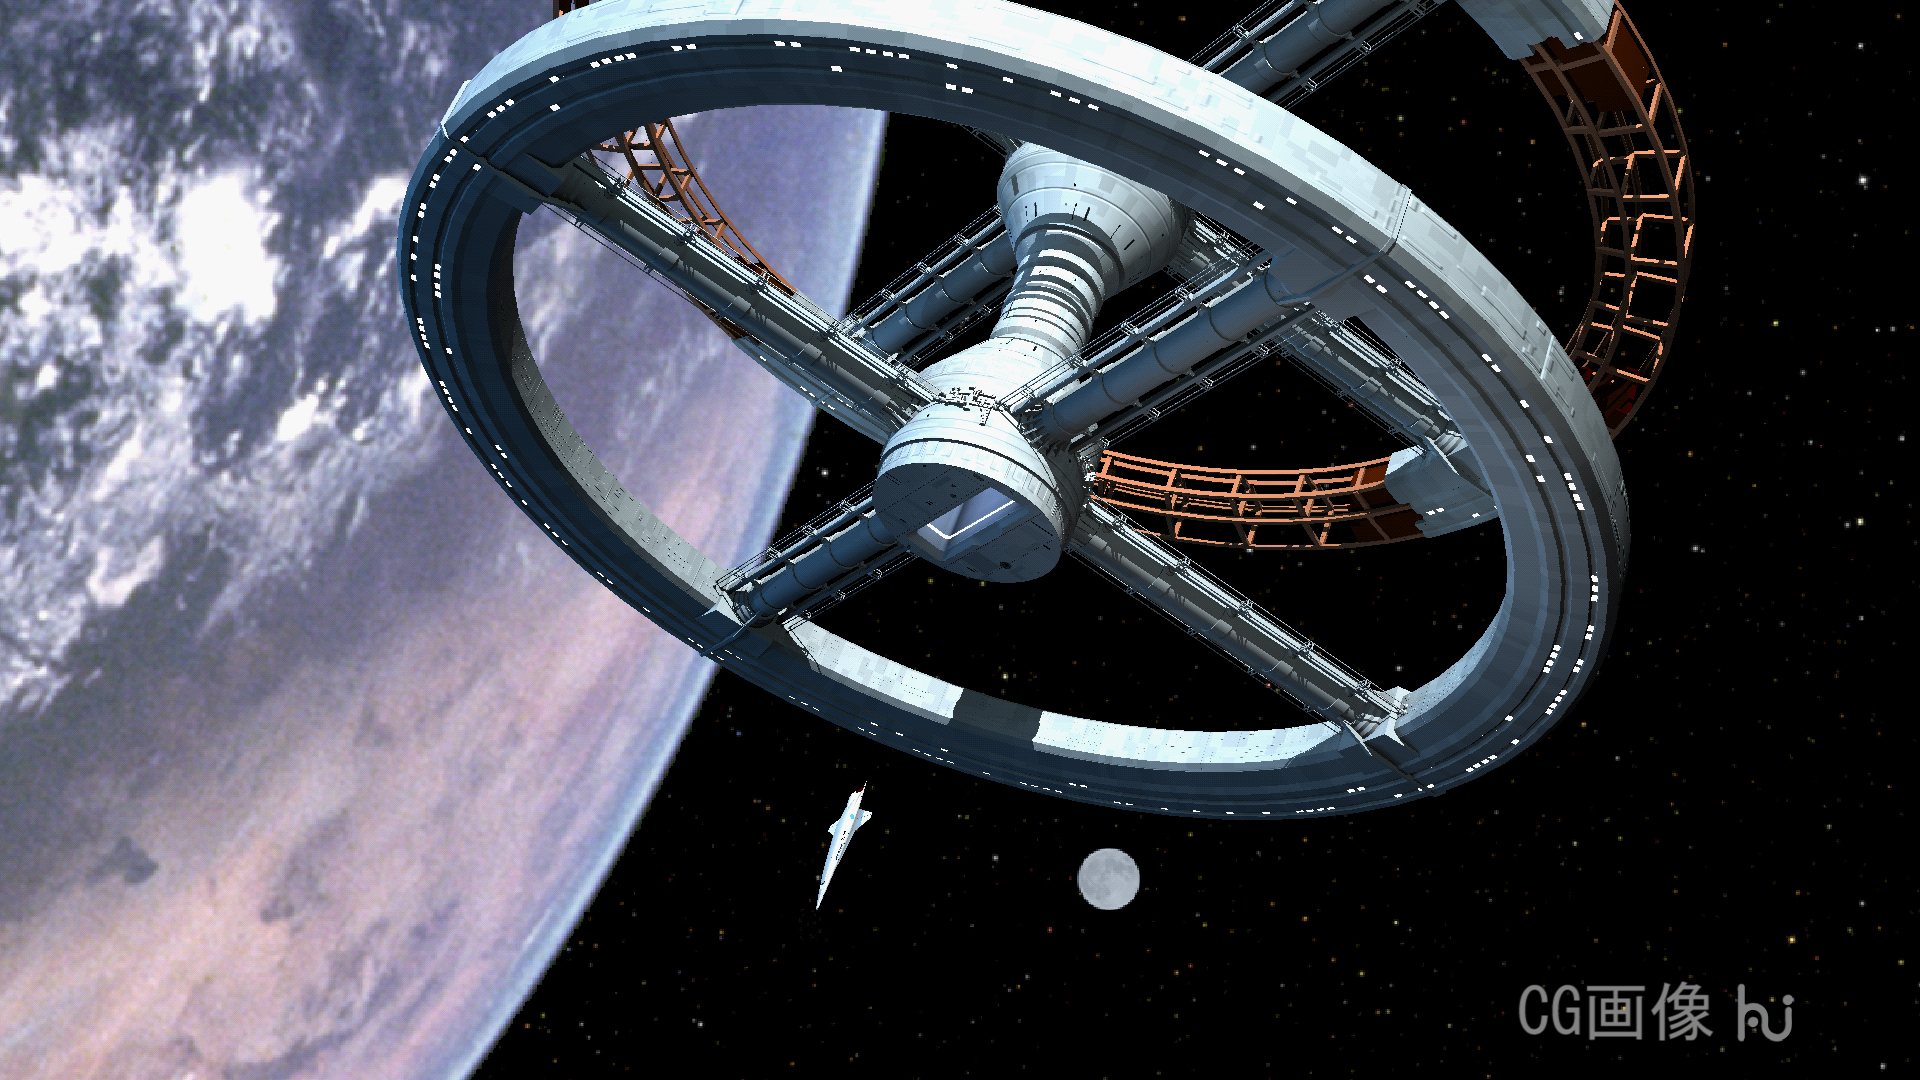 2001:a space odyssey;poster CG movie